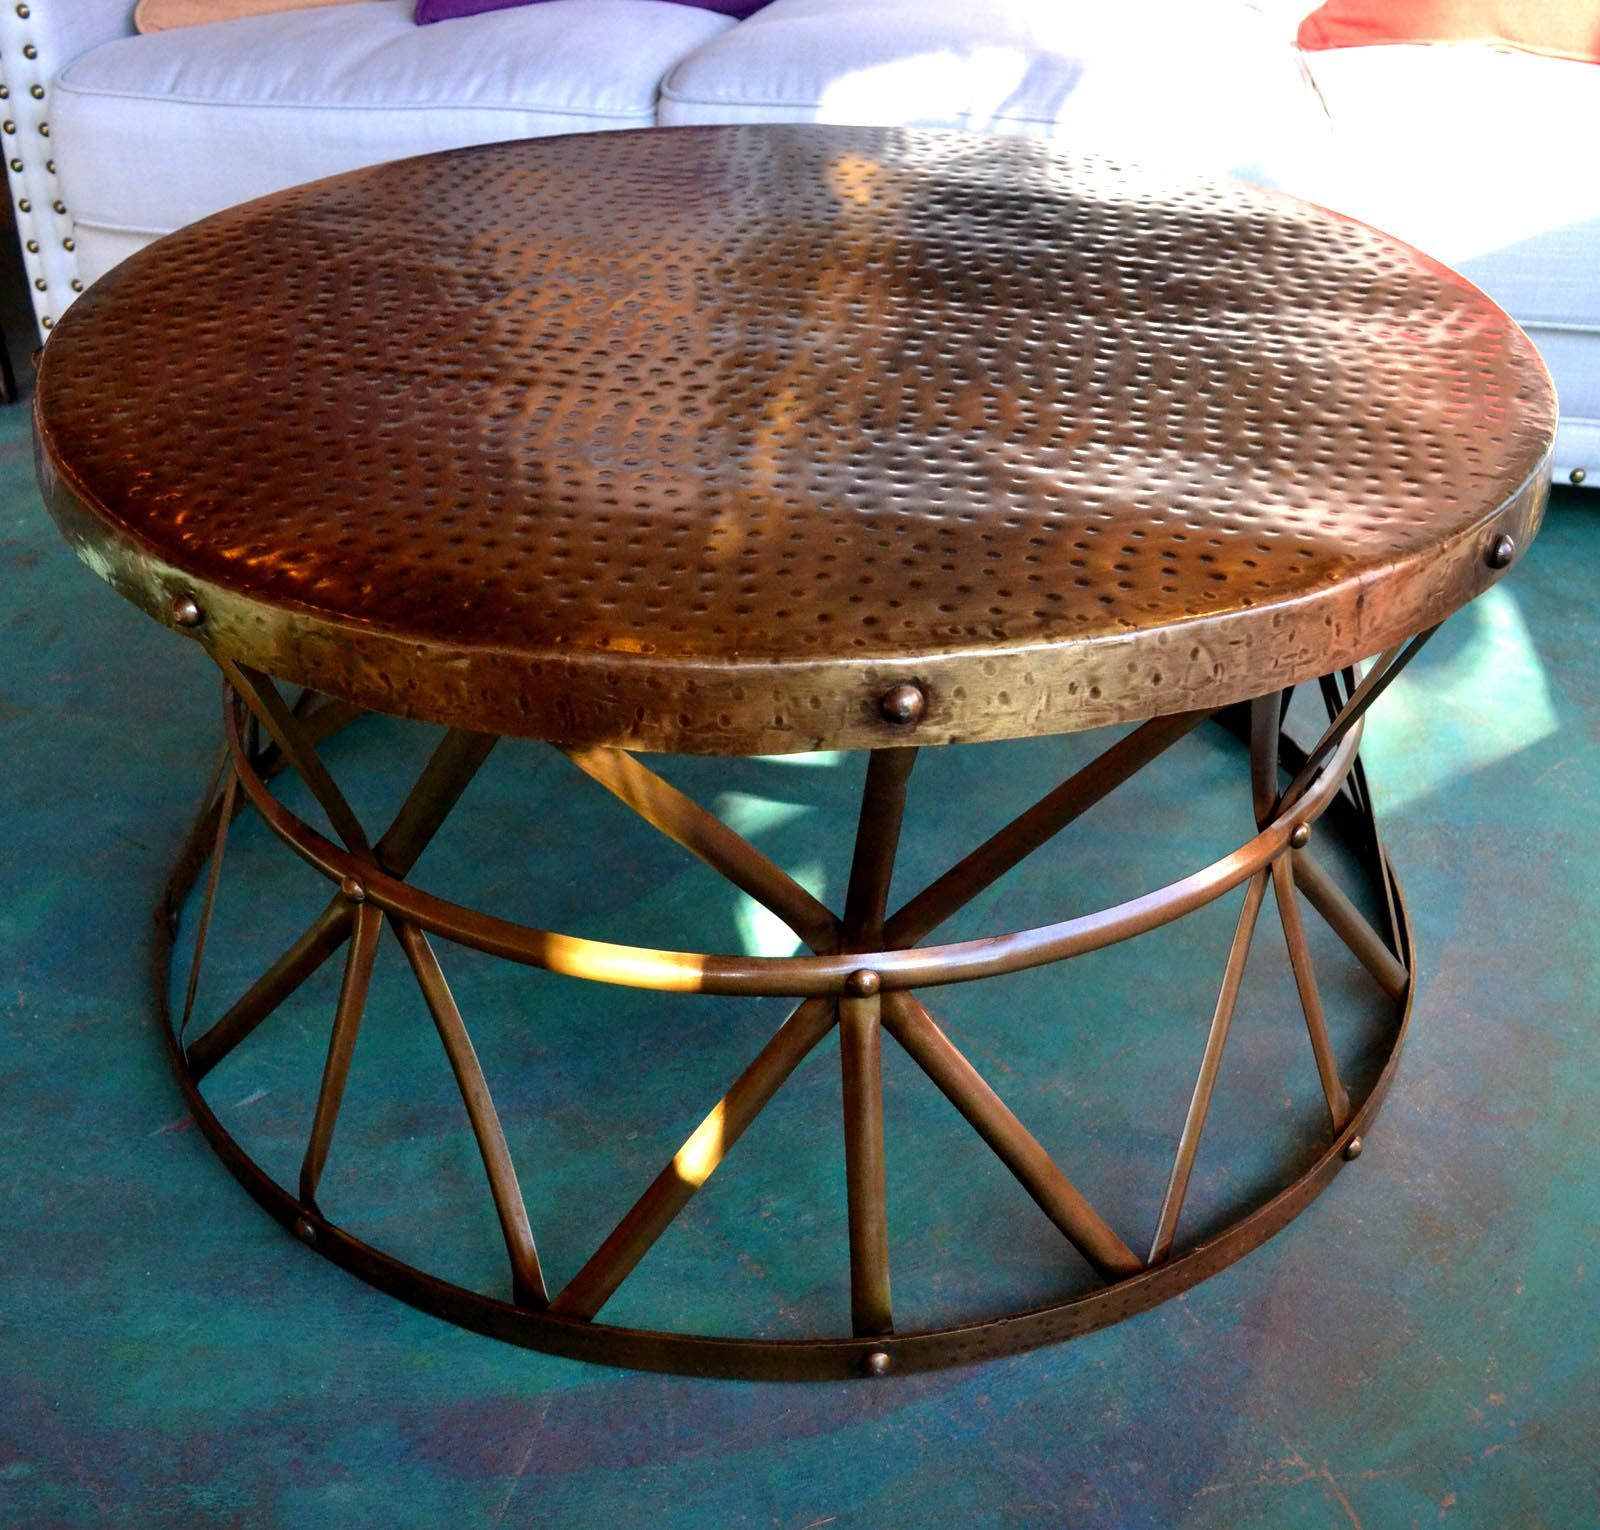 hammered copper coffee table tables drum accent chesterfield sofa battery operated lamp heavy duty umbrella stand oriental style lamps white porch orange bedside side with marble